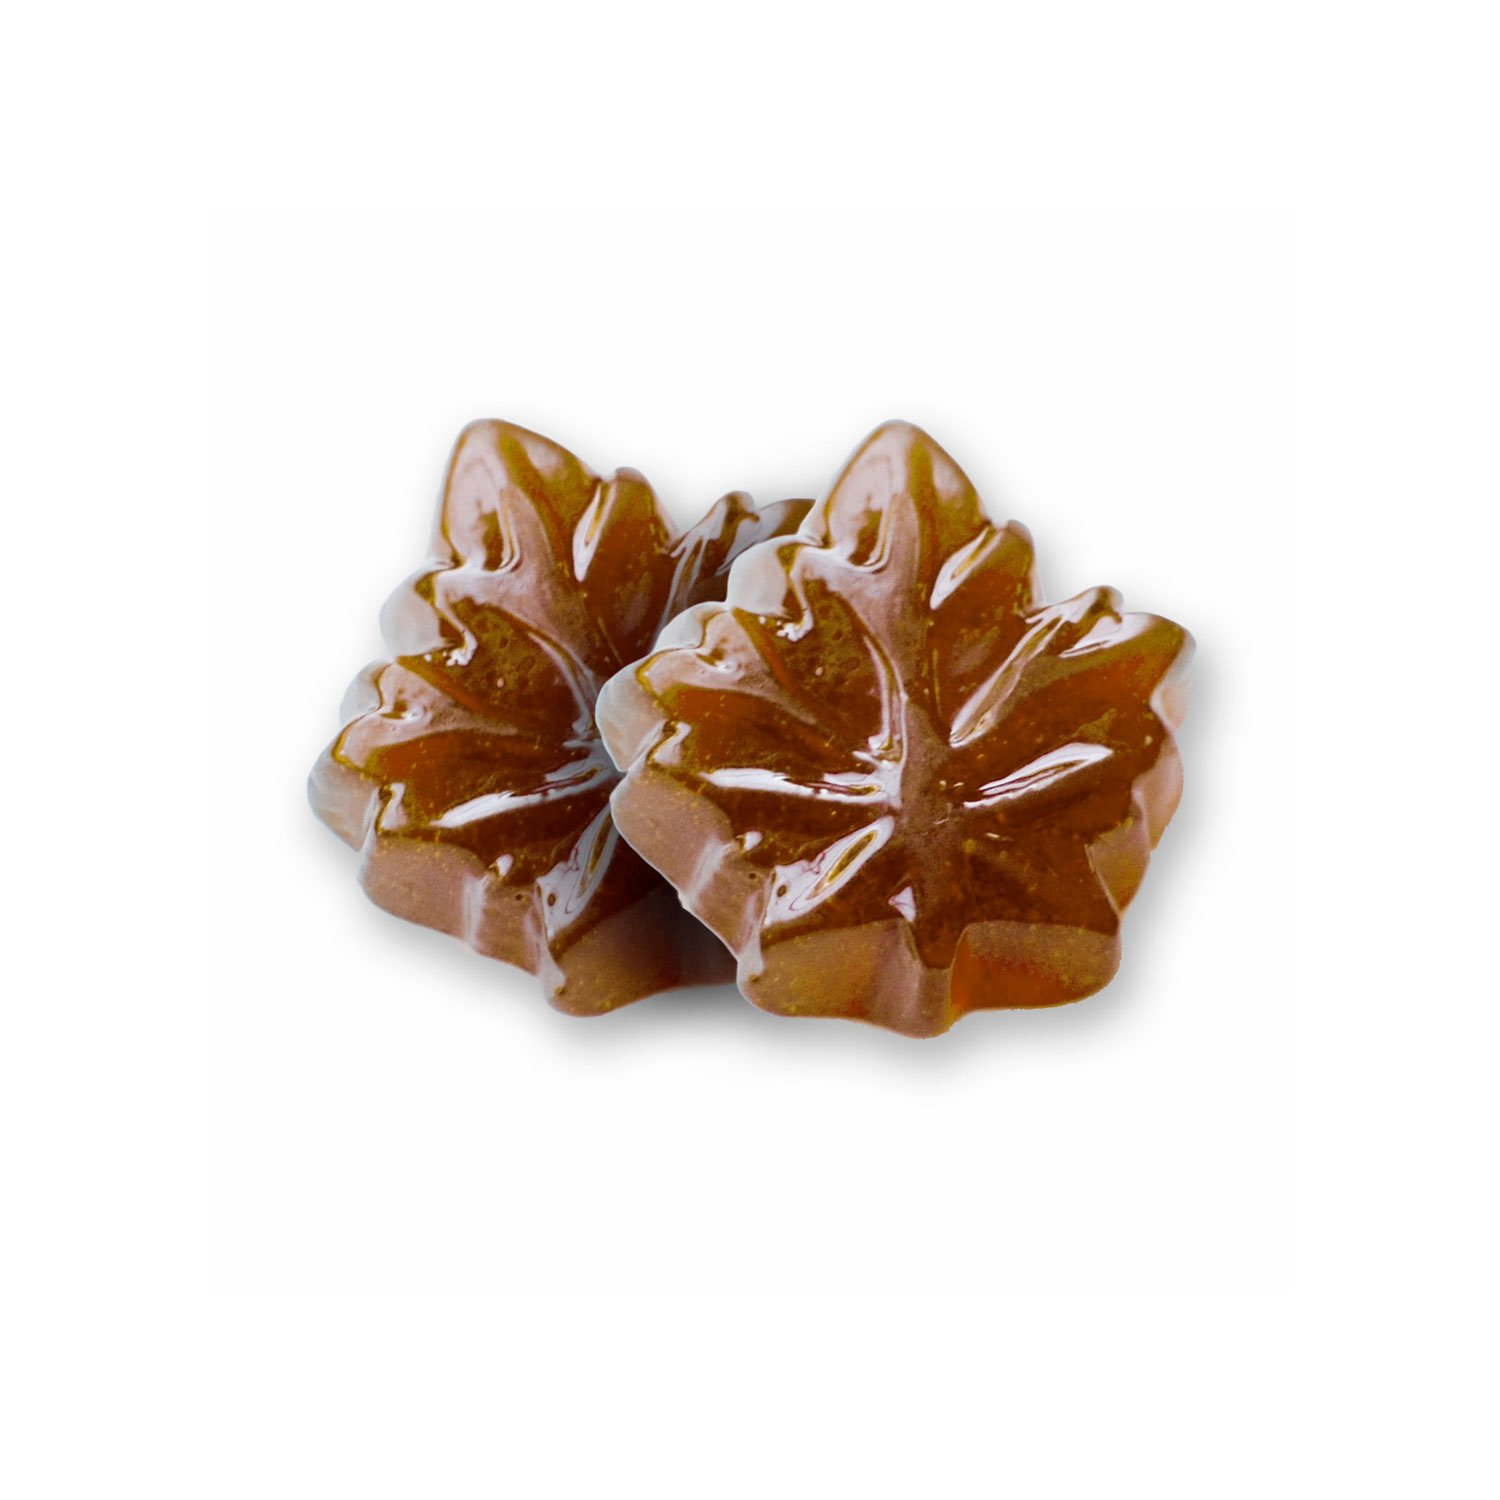 Premium Canadian Maple Sugar Hard Candy Drops Made from Pure Maple Syrup from Canada - Tristan Foods (1-lb) by Tristan Foods